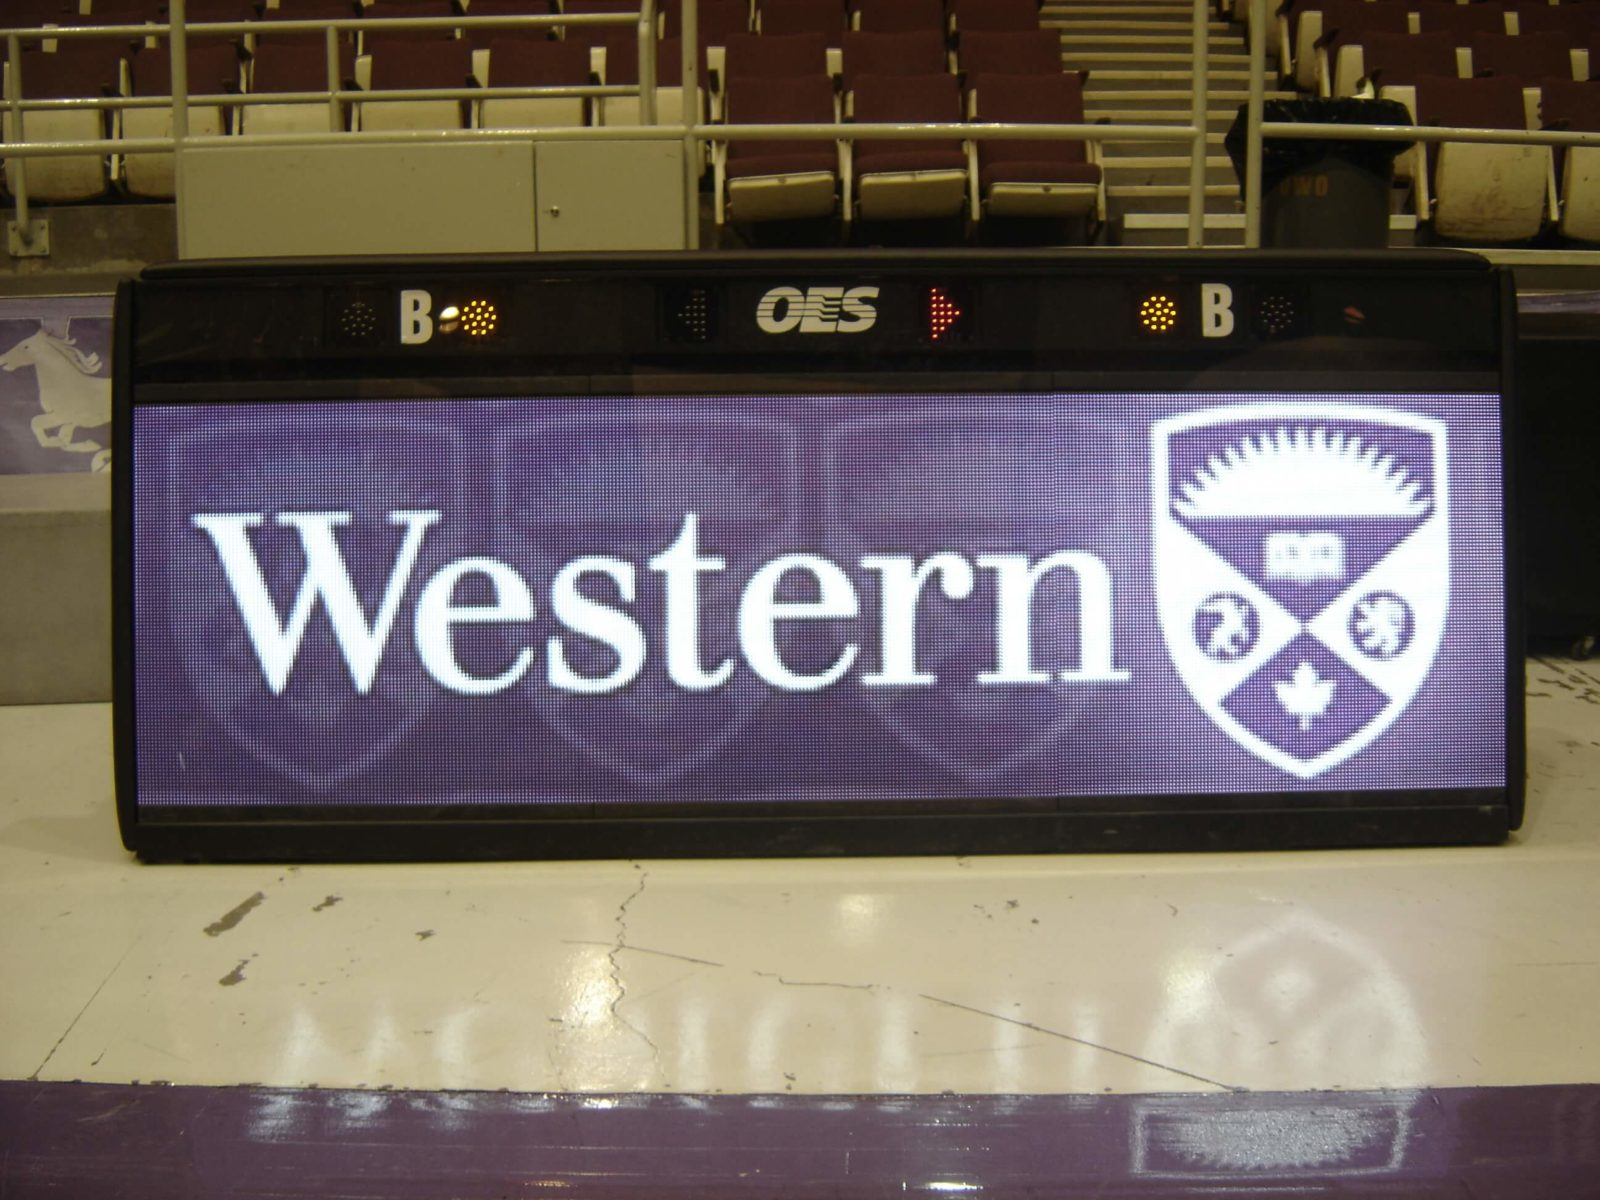 DIgital Scoreboard front with the Western University logo in purple and white .